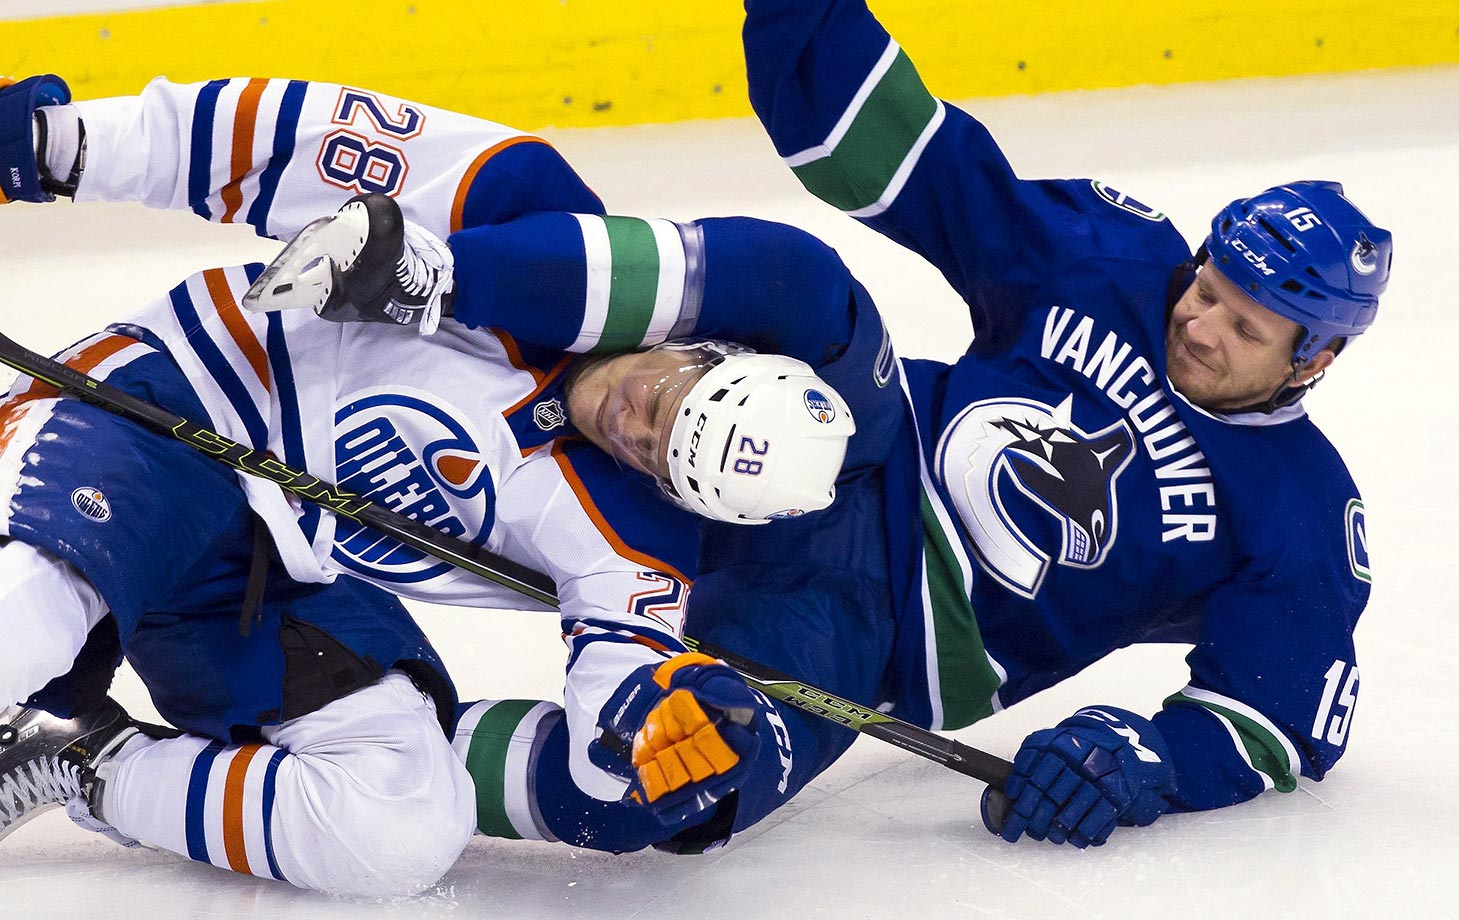 Taylor Hall of the Edmonton Oilers gets tangled up in a game against the Vancouver Canucks.